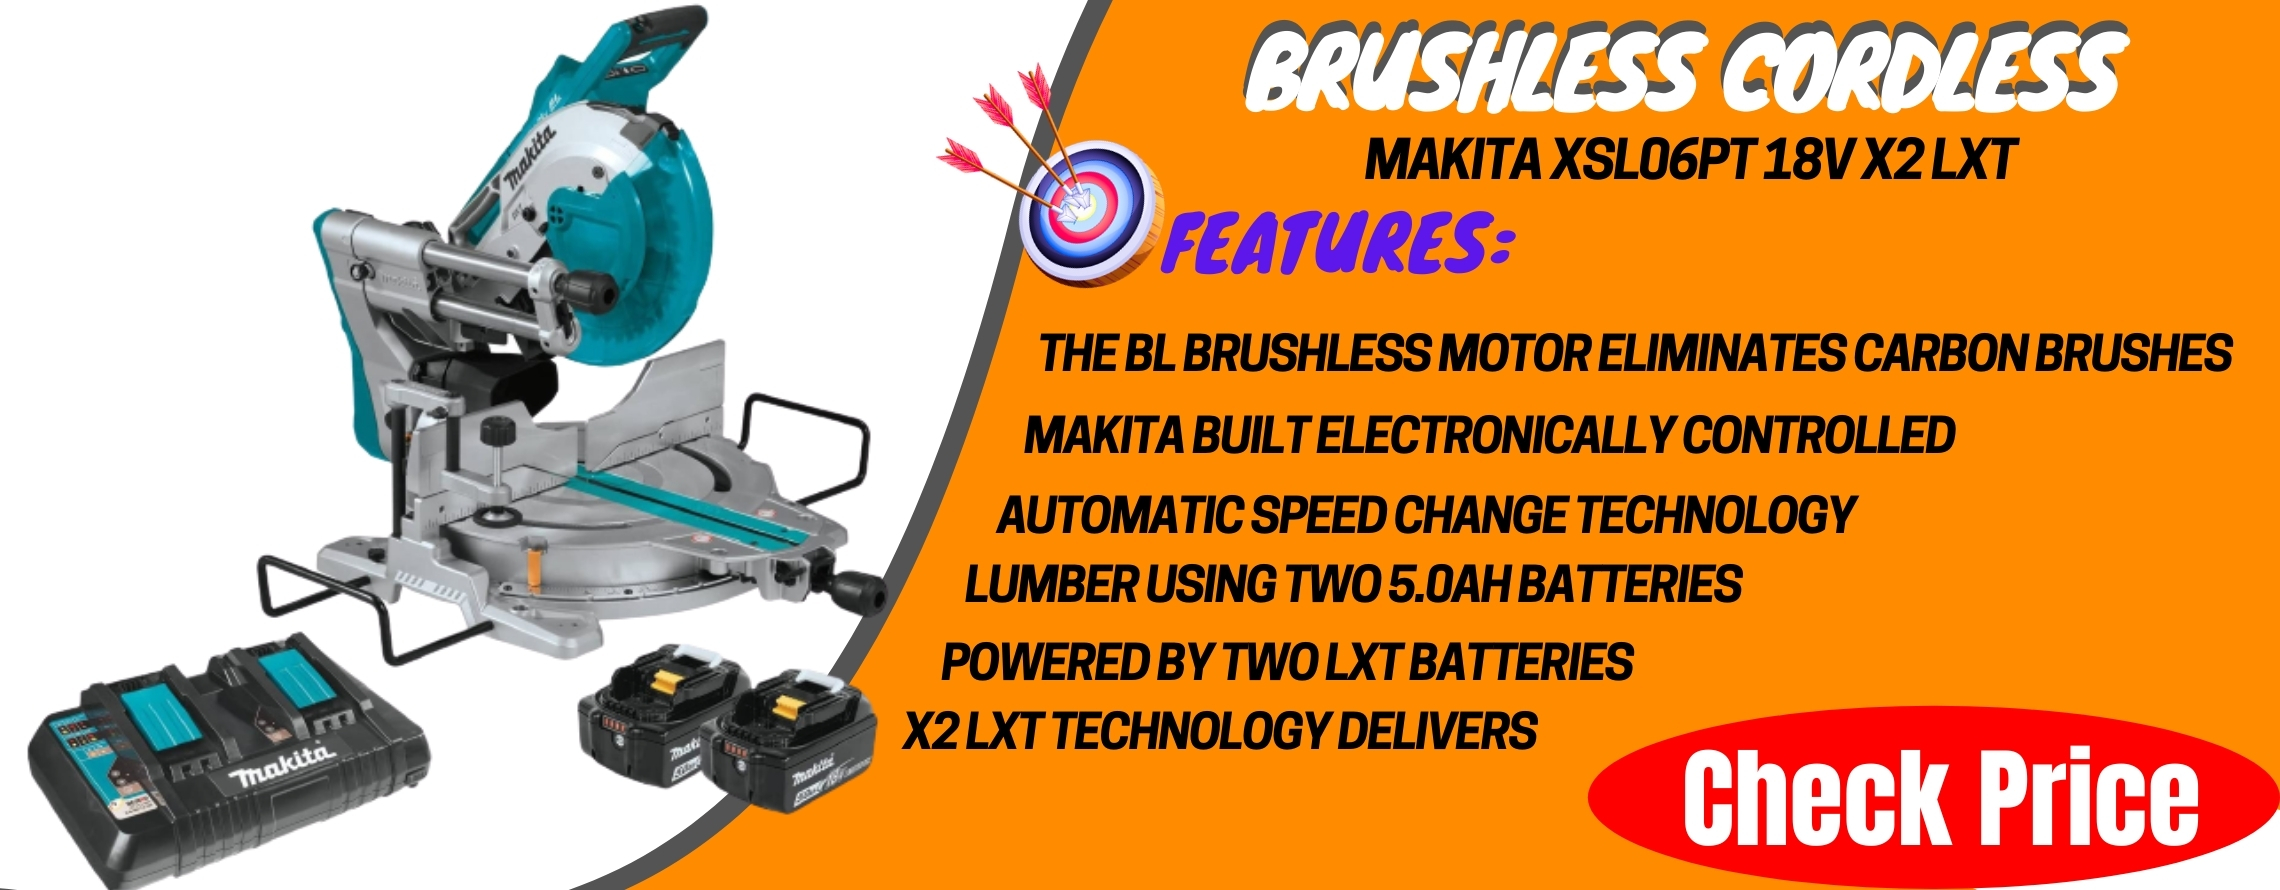 Makita XSL06PT 18V x2 LXT Lithium-Ion (36V) Brushless Cordless 10_ Dual-Bevel Sliding Compound Miter Saw with Laser Kit (5.0Ah)